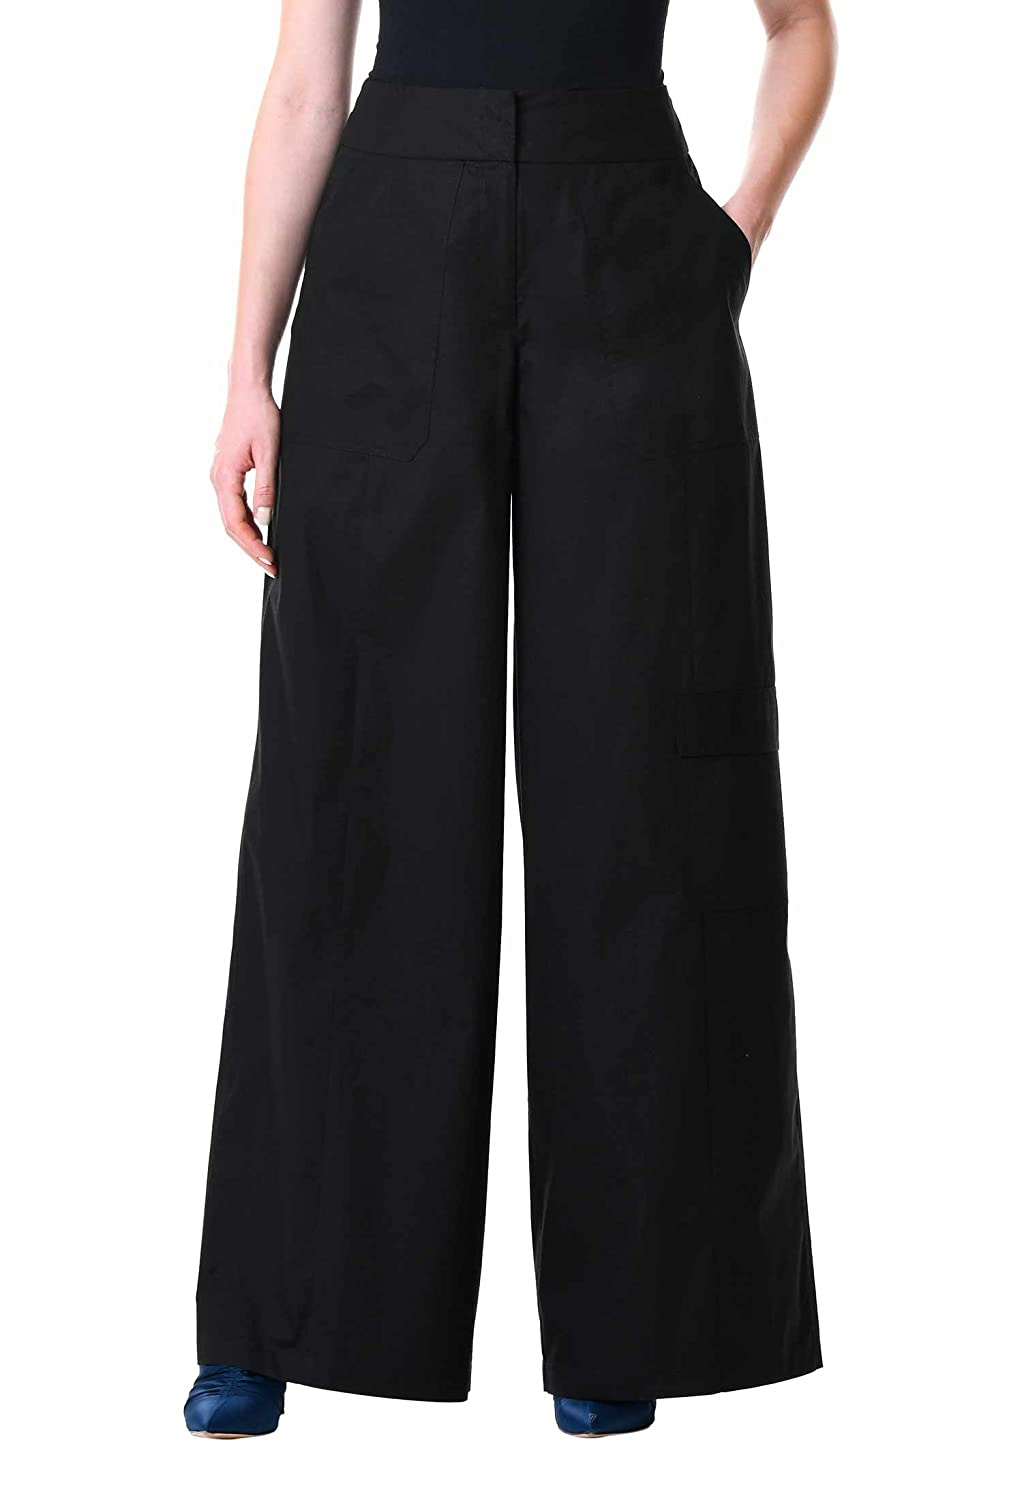 Vintage High Waisted Trousers, Sailor Pants, Jeans eShakti Womens Cotton poplin Palazzo Pants $64.95 AT vintagedancer.com